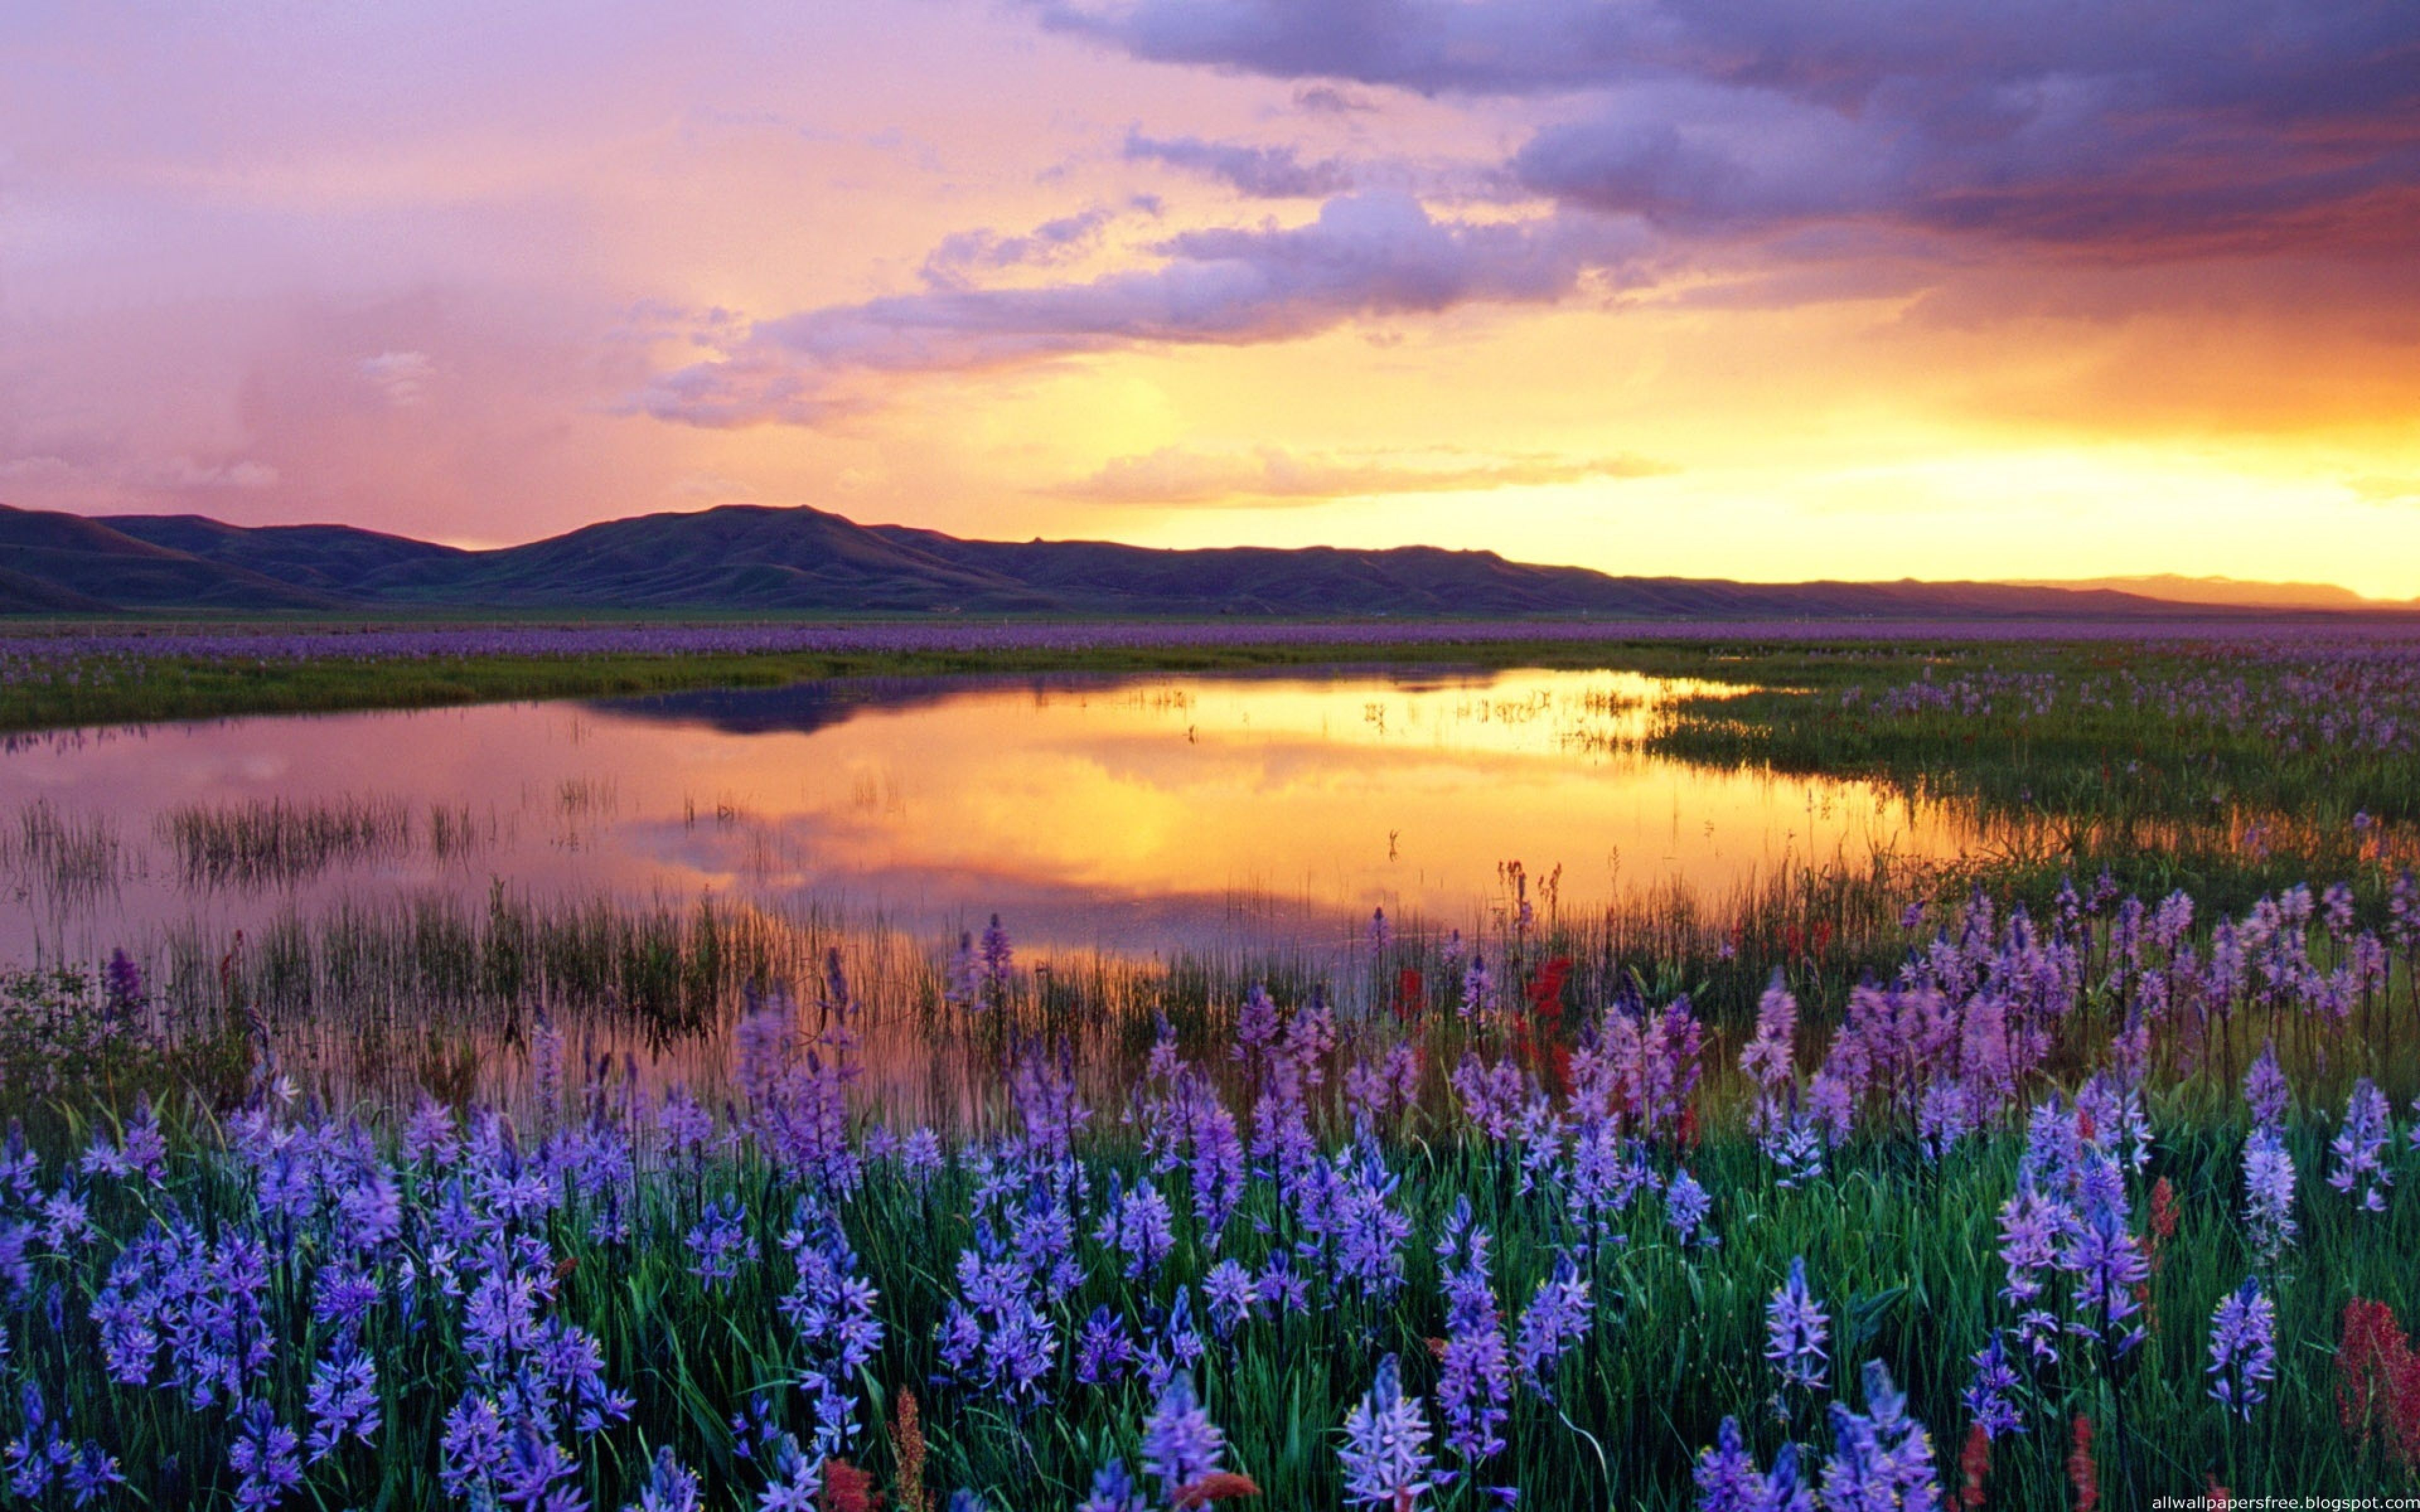 Flower Landscapes Download Wallpaper 3840x2400 Flowers Lake Mountains Evening